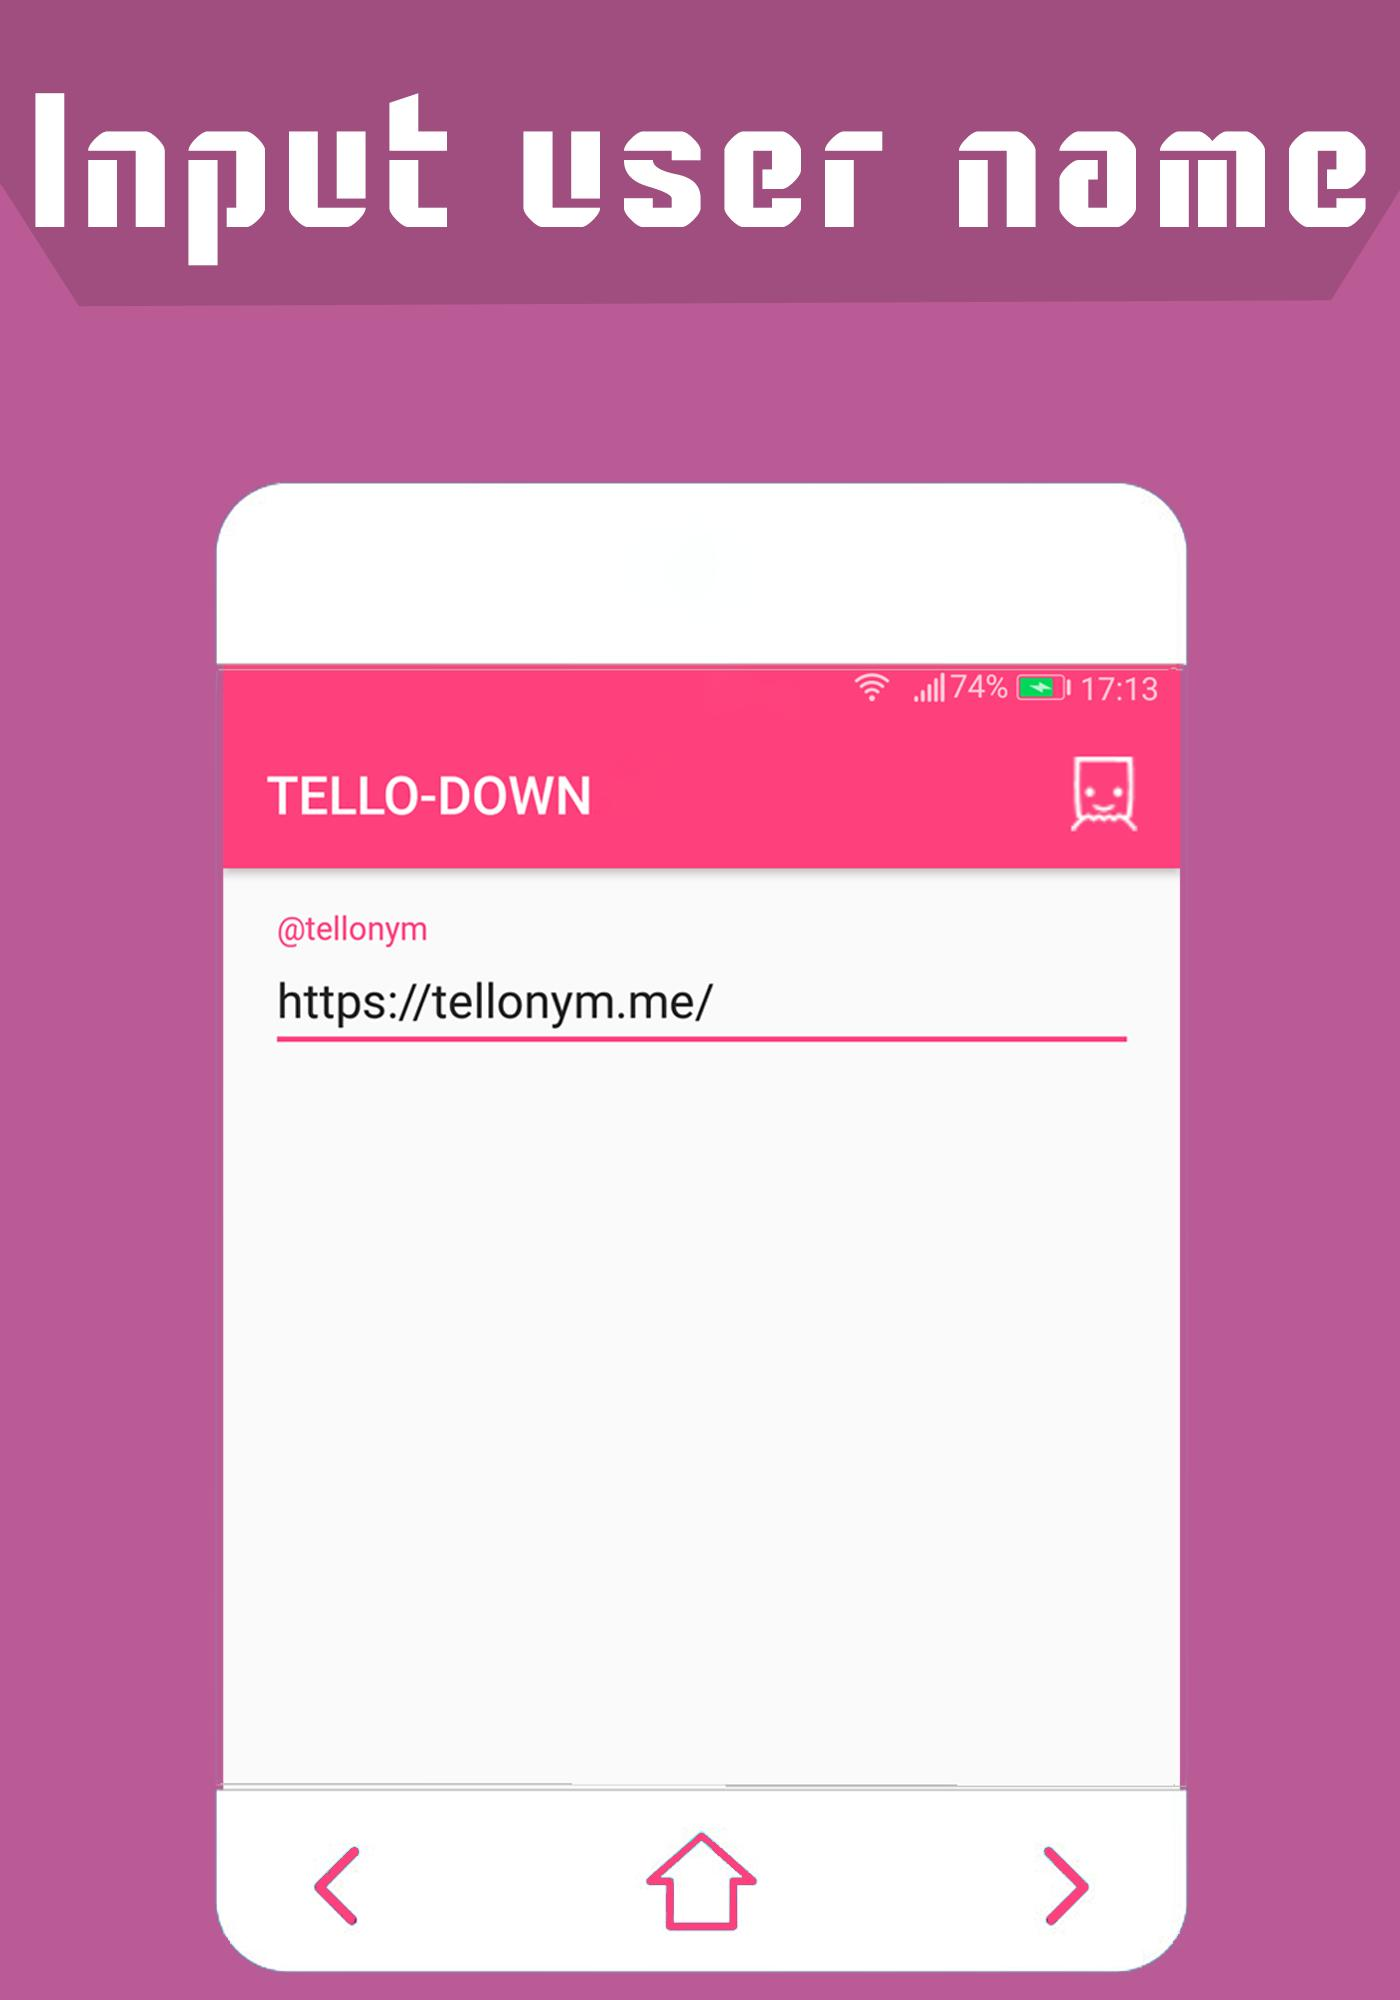 TELLO-DOWN: Tellonym profile picture downloader for Android